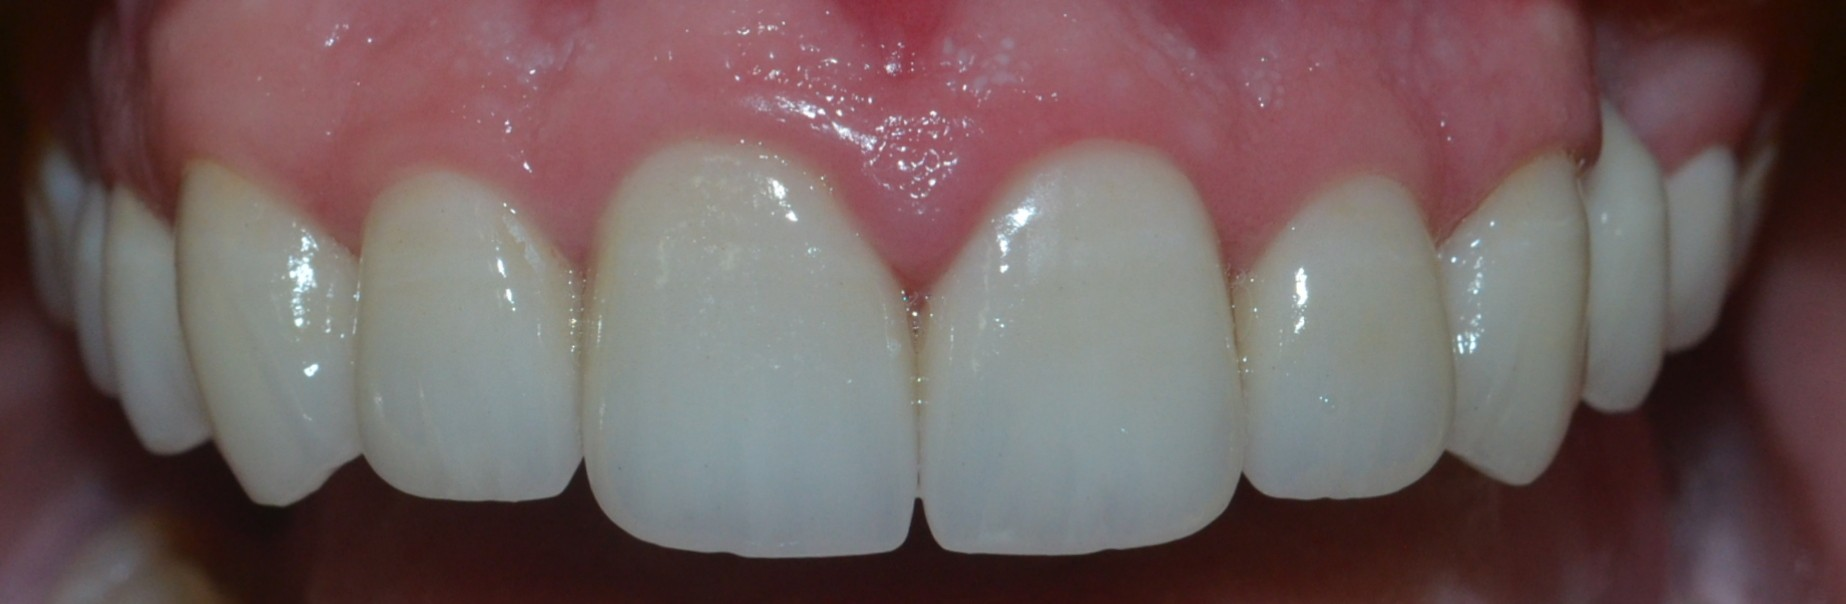 Teeth with Dental Crowns in Pune, India